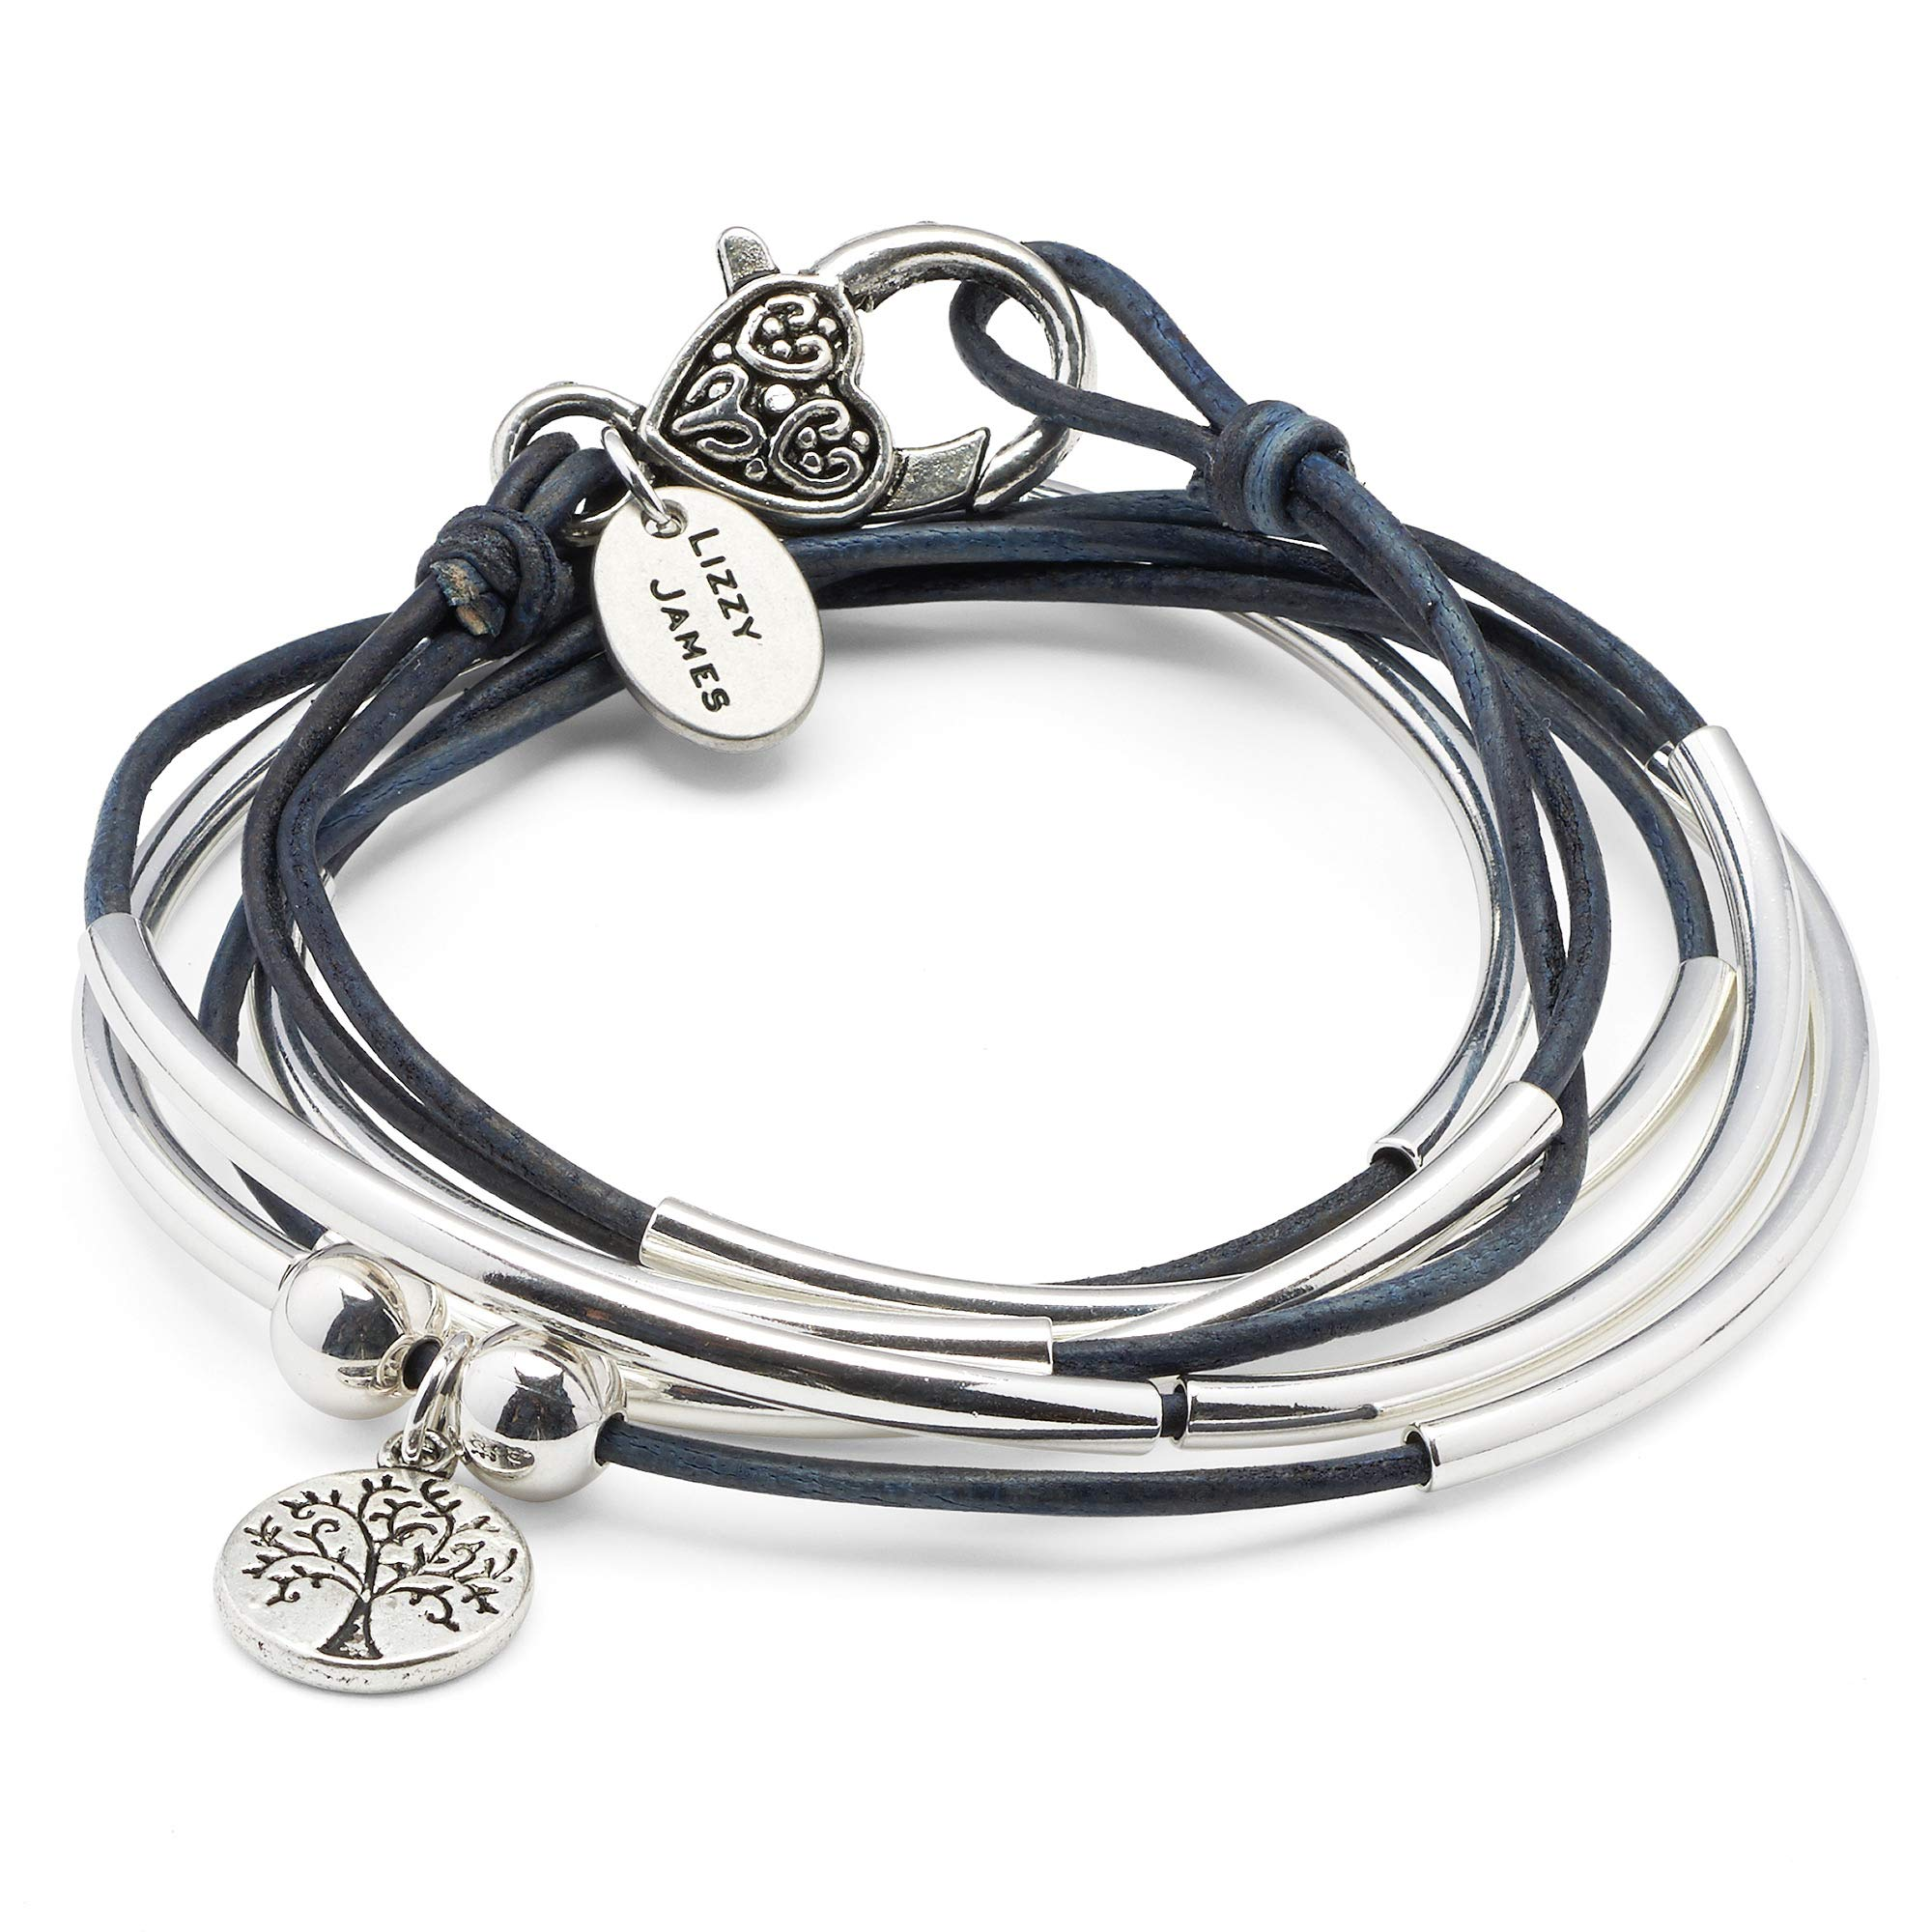 Lizzy James Girlfriend Silver Bracelet Necklace with Silver Tree of Life Charm in True Blue Leather (Medium)